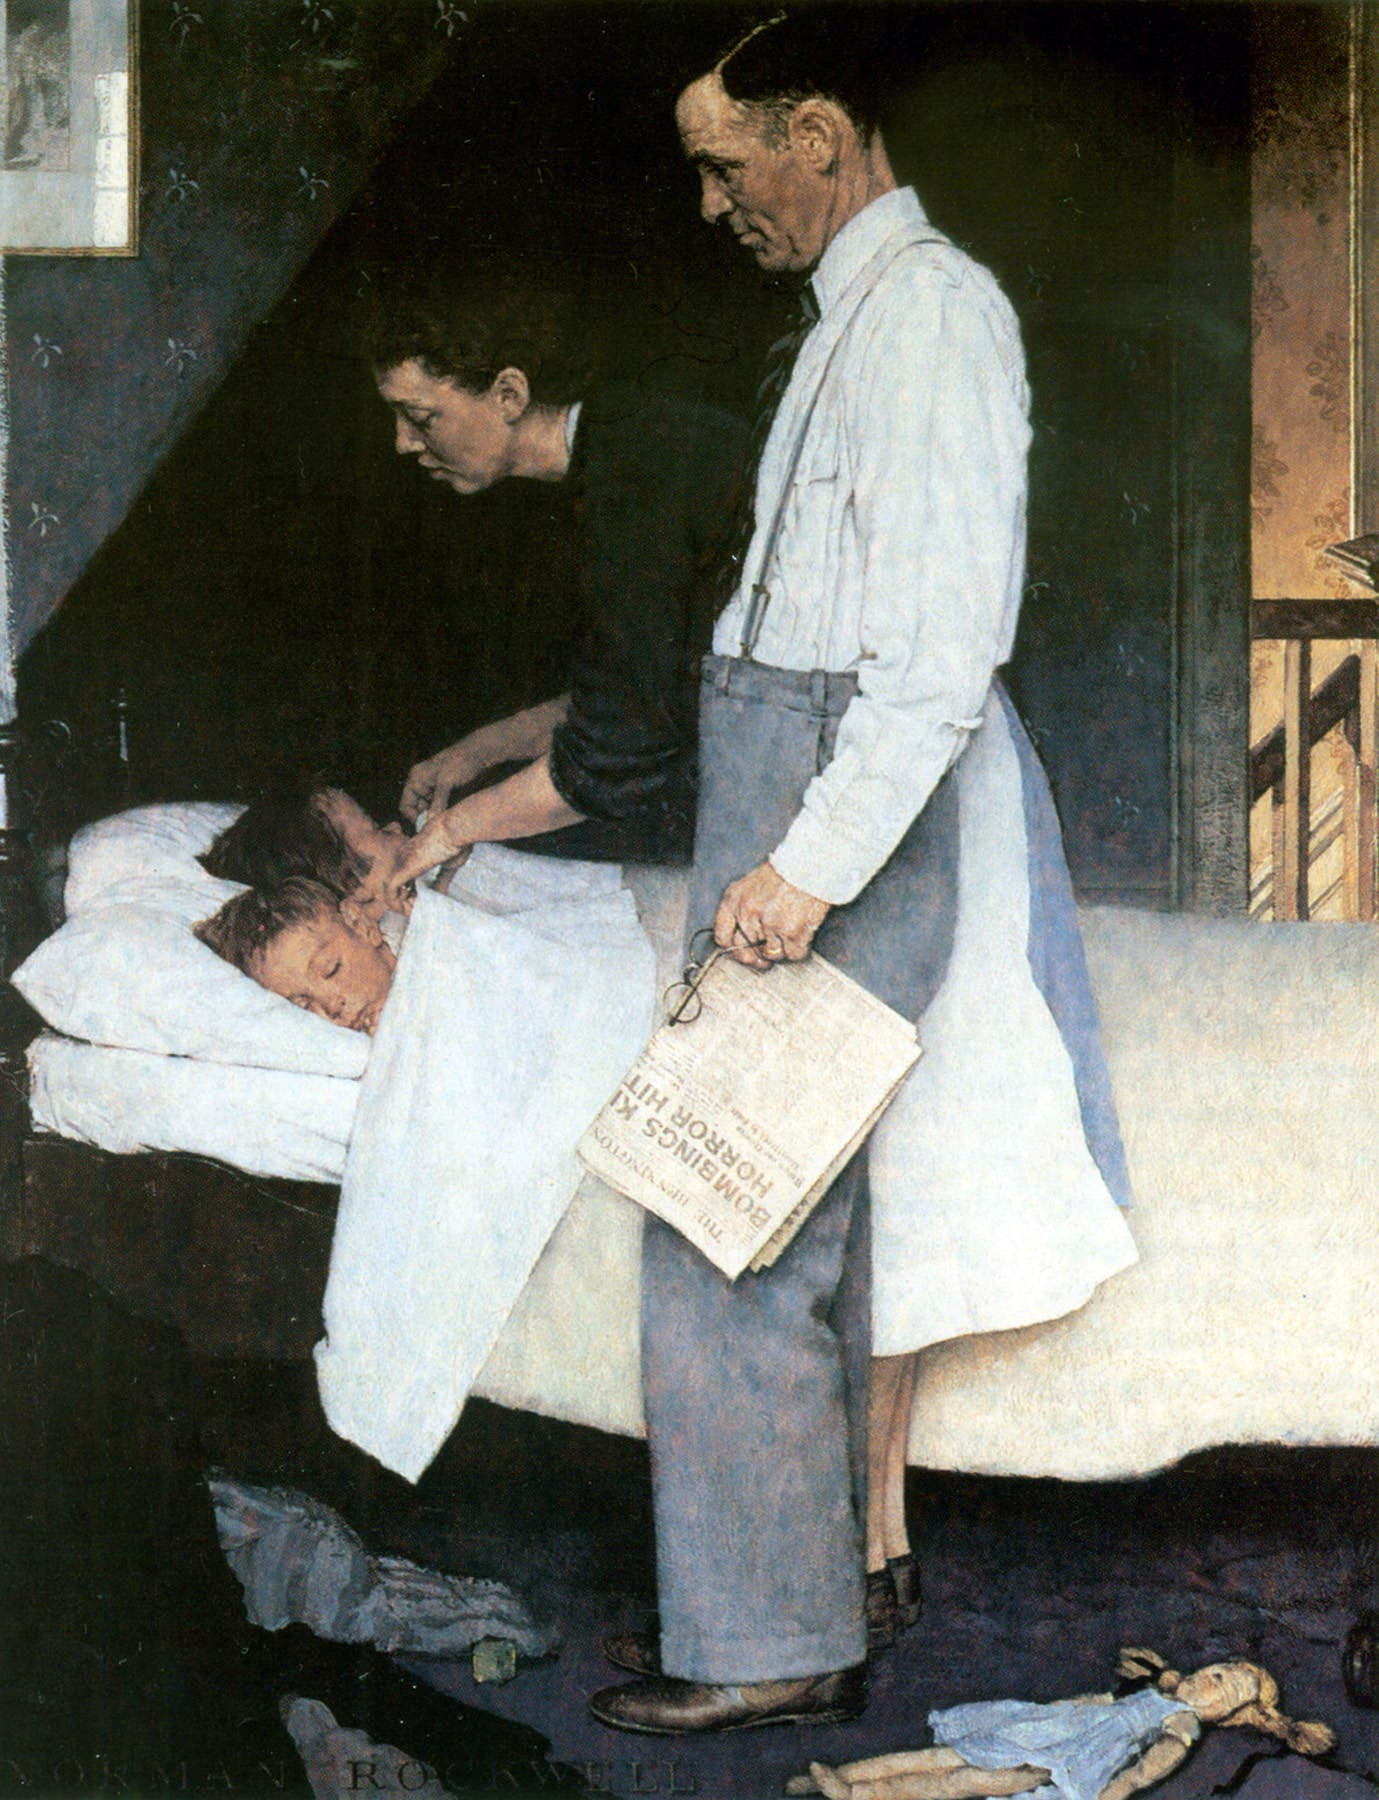 After: Norman Rockwell's Freedom from Fear (1943) and an illustration by Ed Valigursky